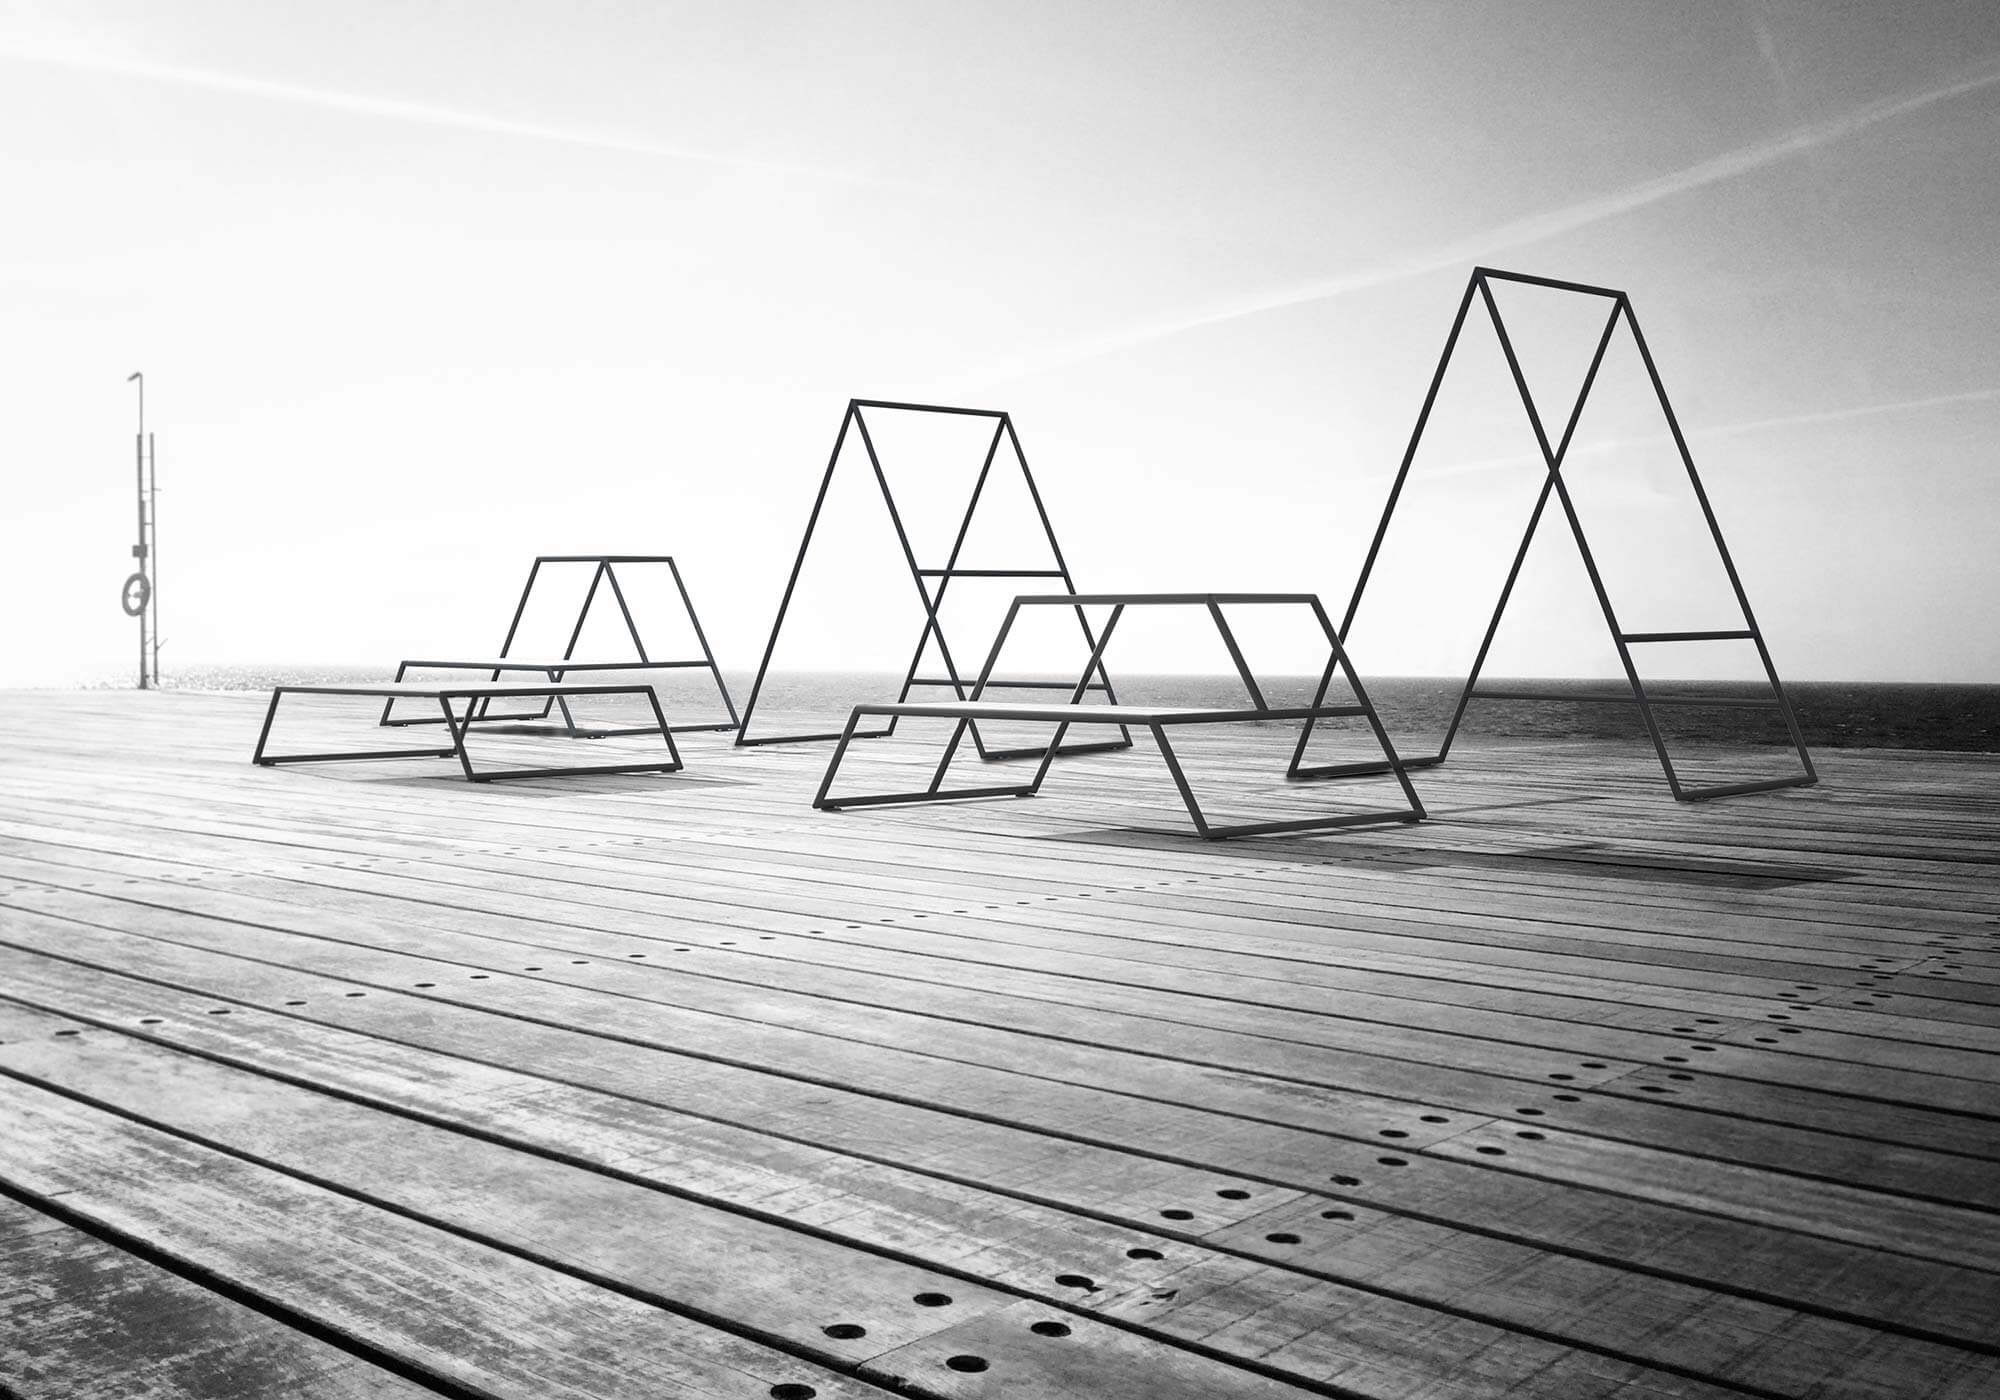 an outdoor gym on wood